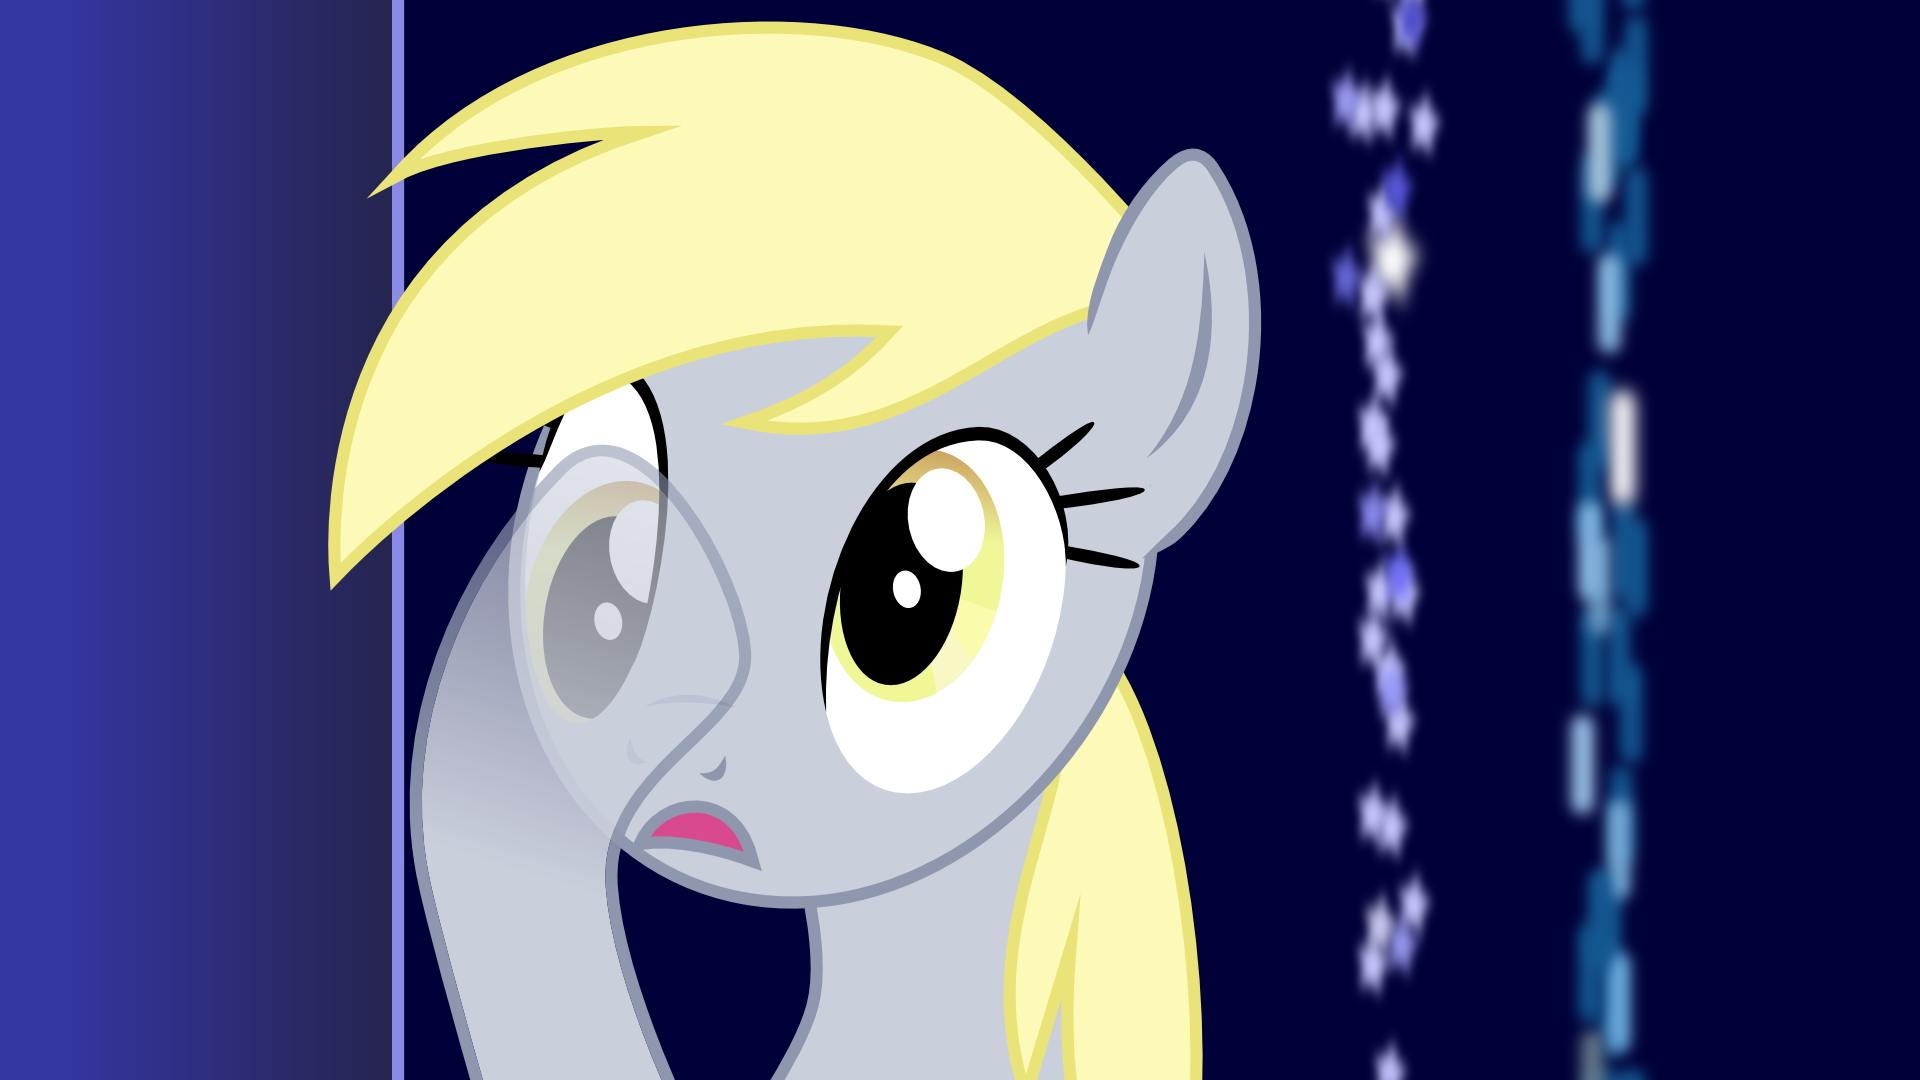 Derp Angel, Derp Angel, Will You Be Mine? by mandydax